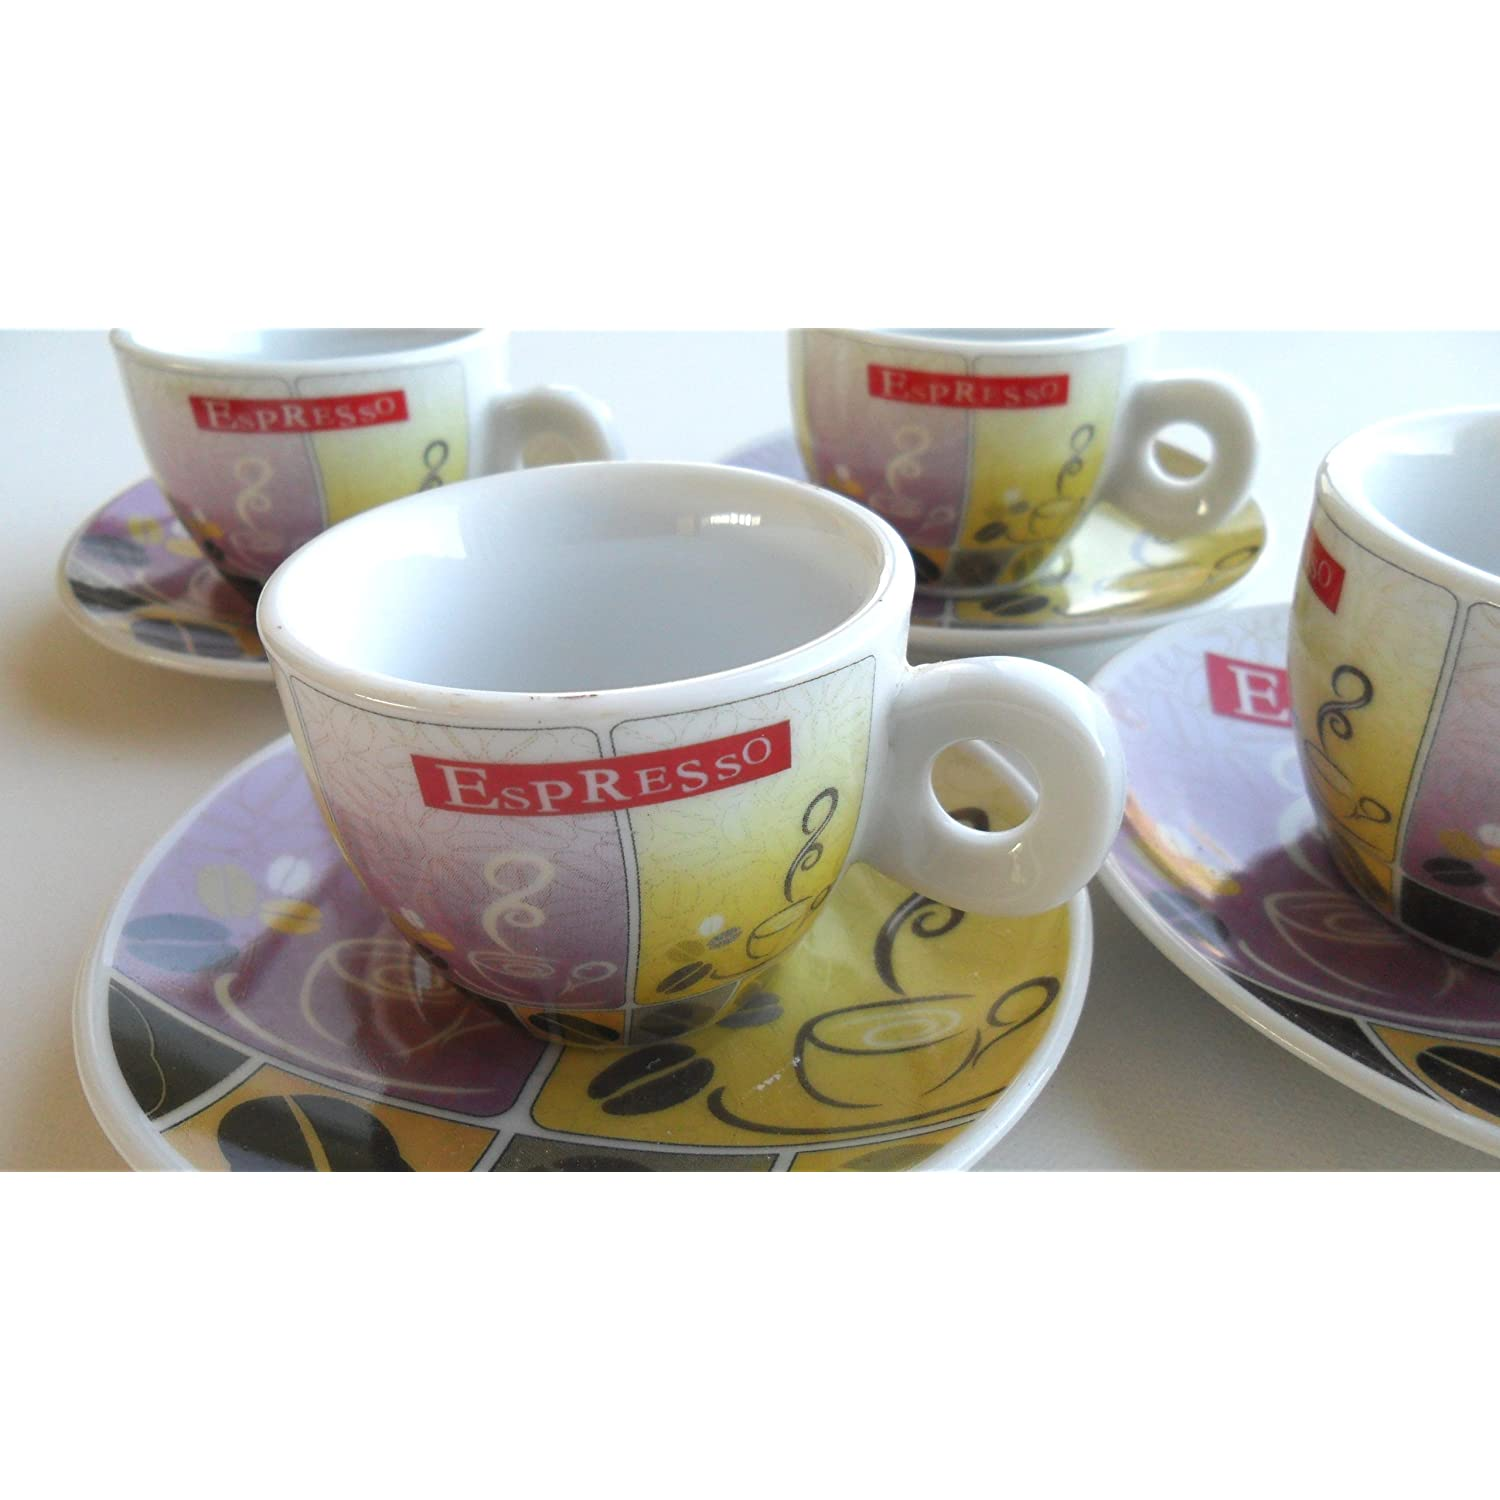 Espresso Coffee Cups Set of 4 Demitasse Cups with European Coffee Bean Motif